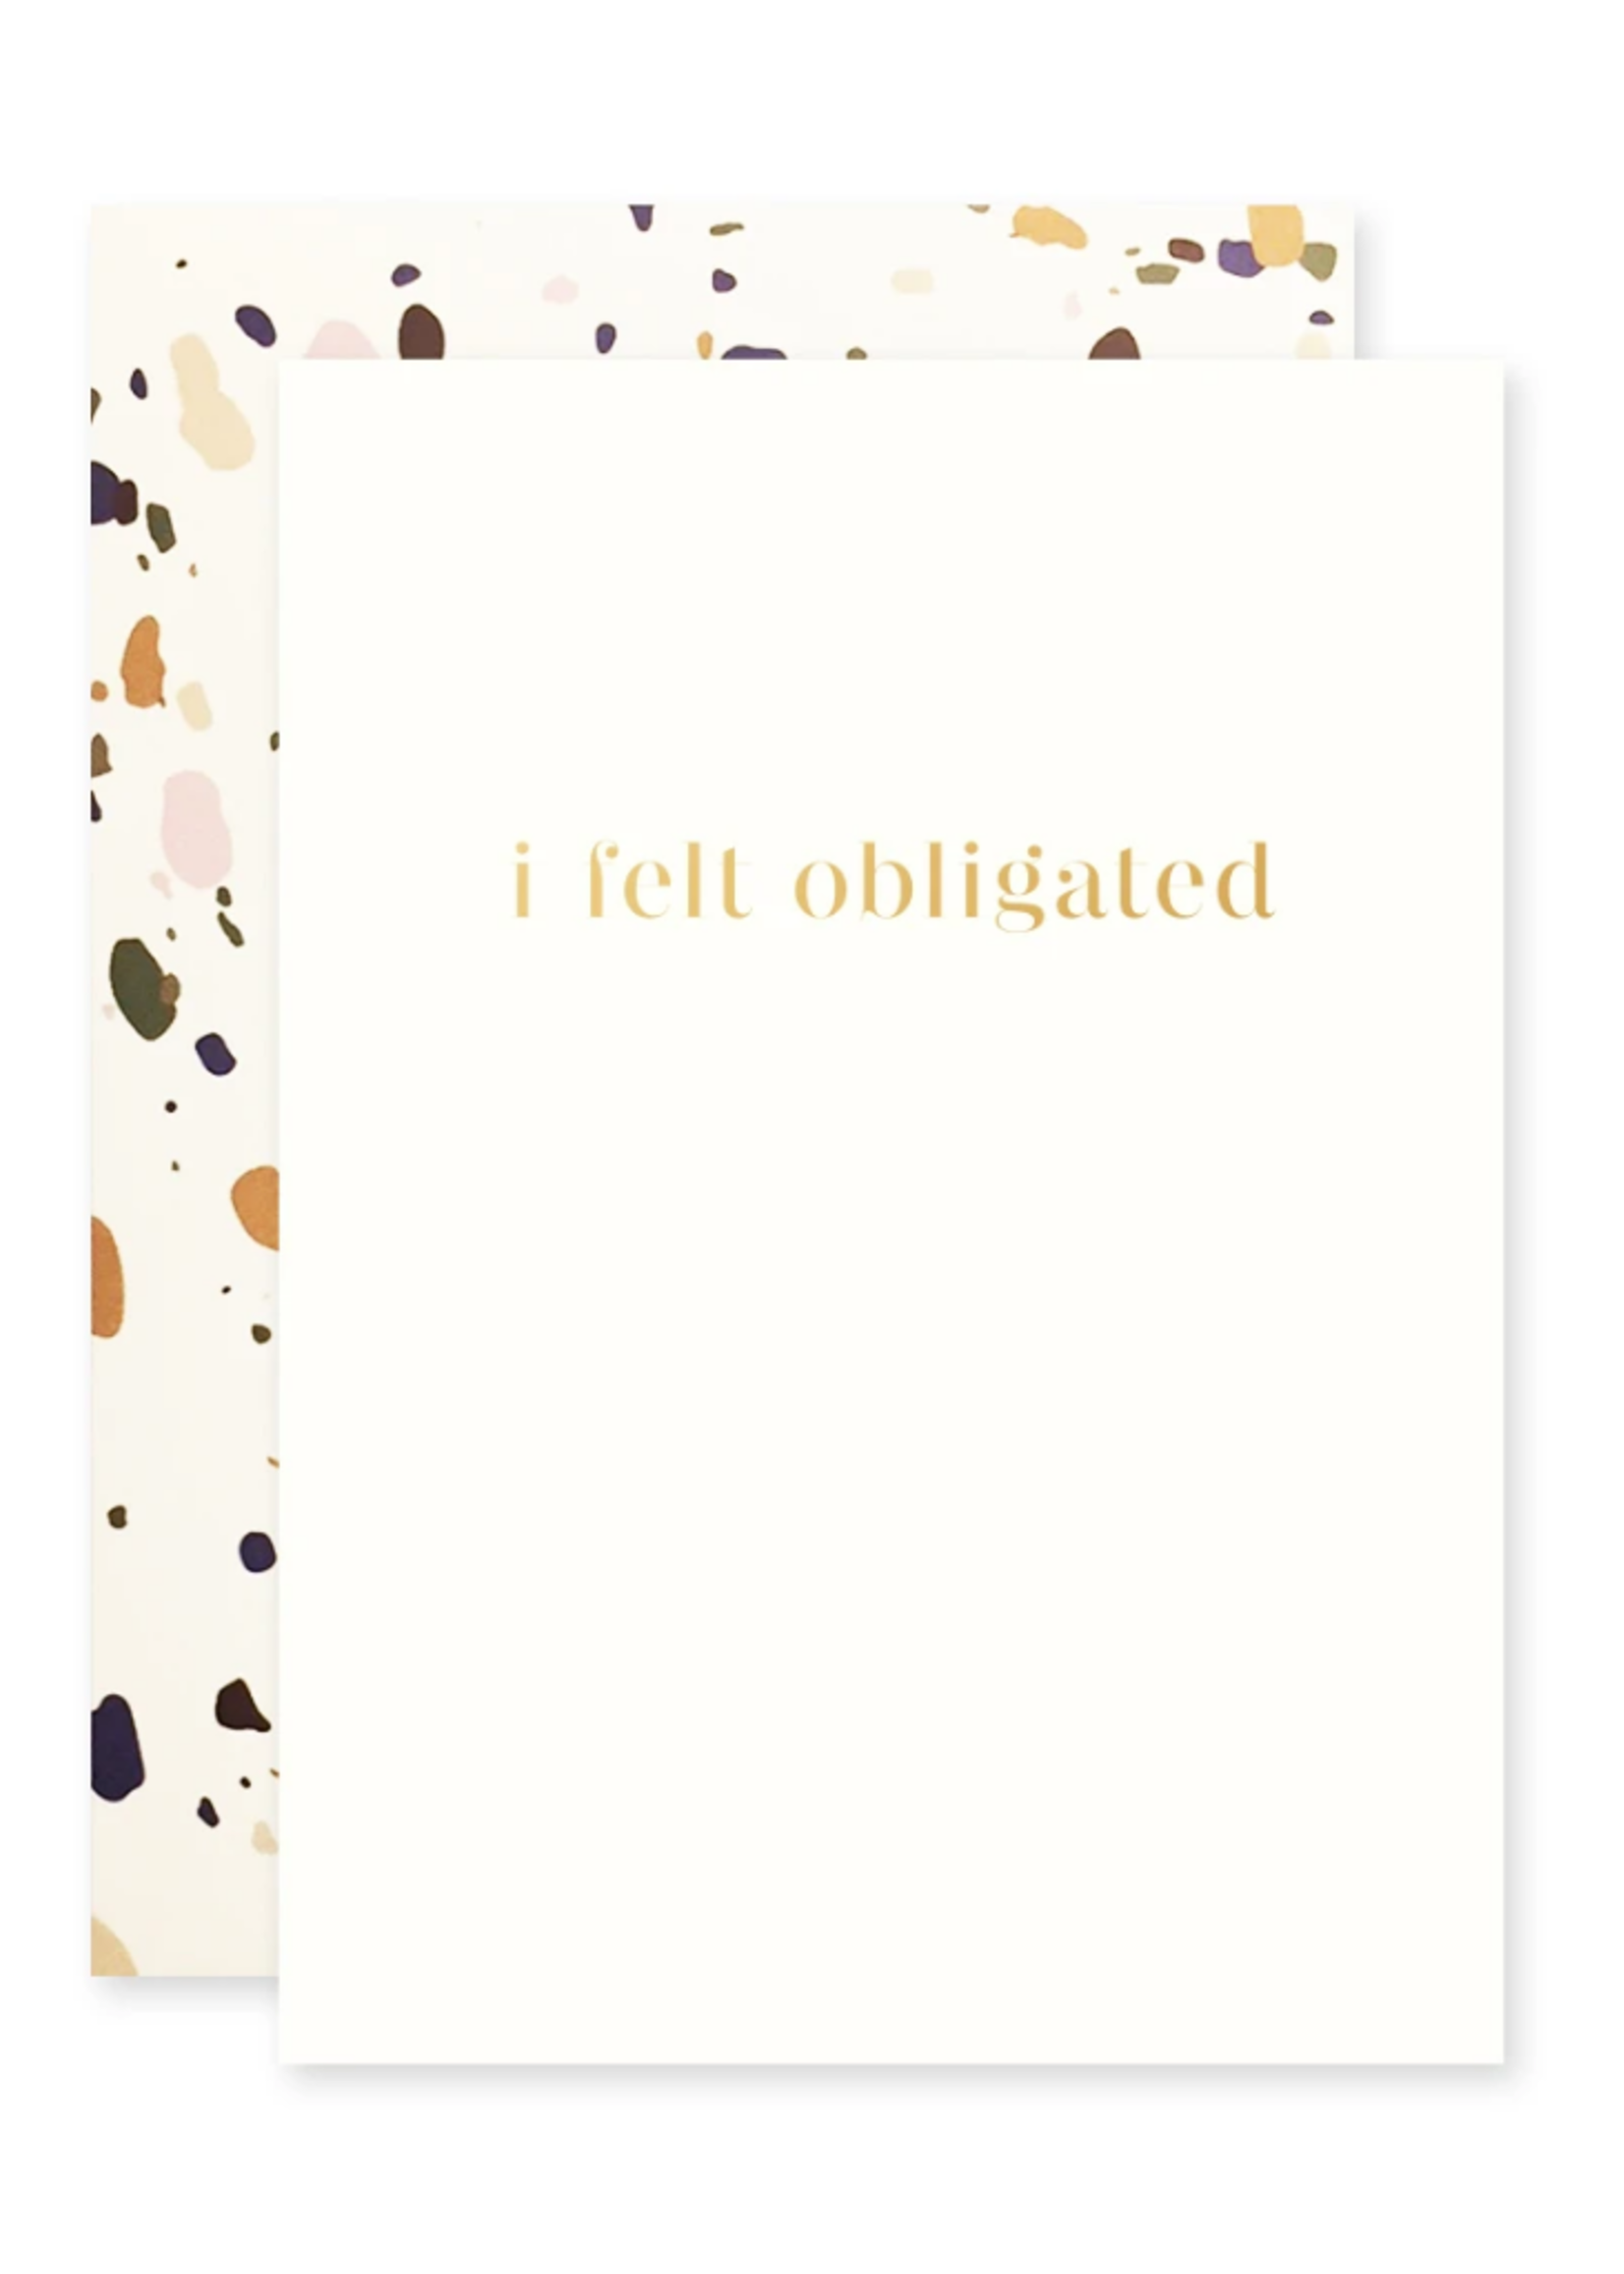 The Social Type Felt Obligated Humorous Card